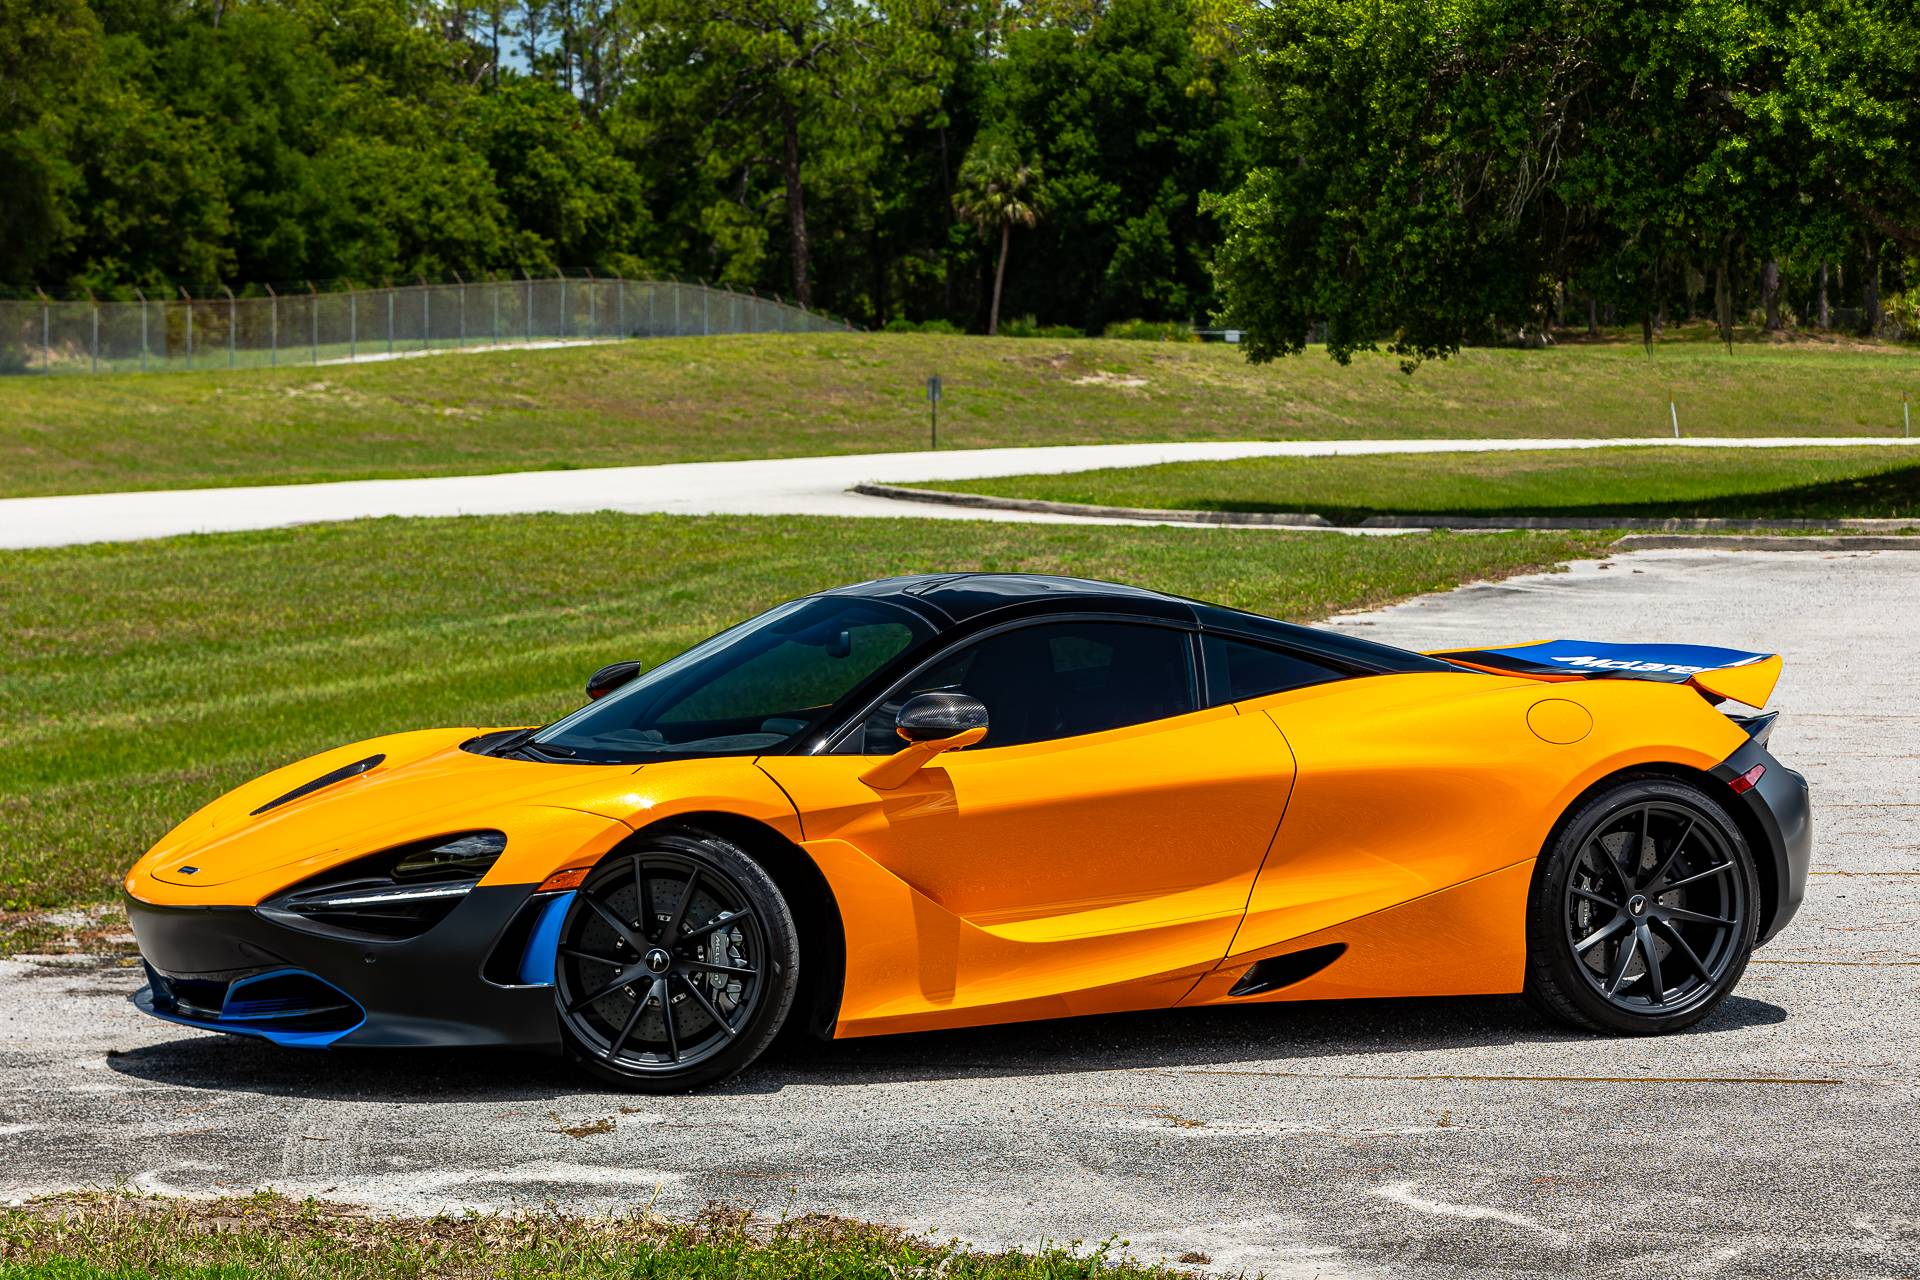 Used 2019 McLaren 720S Performance for sale $282,880 at McLaren Orlando LLC in Titusville FL 32780 1